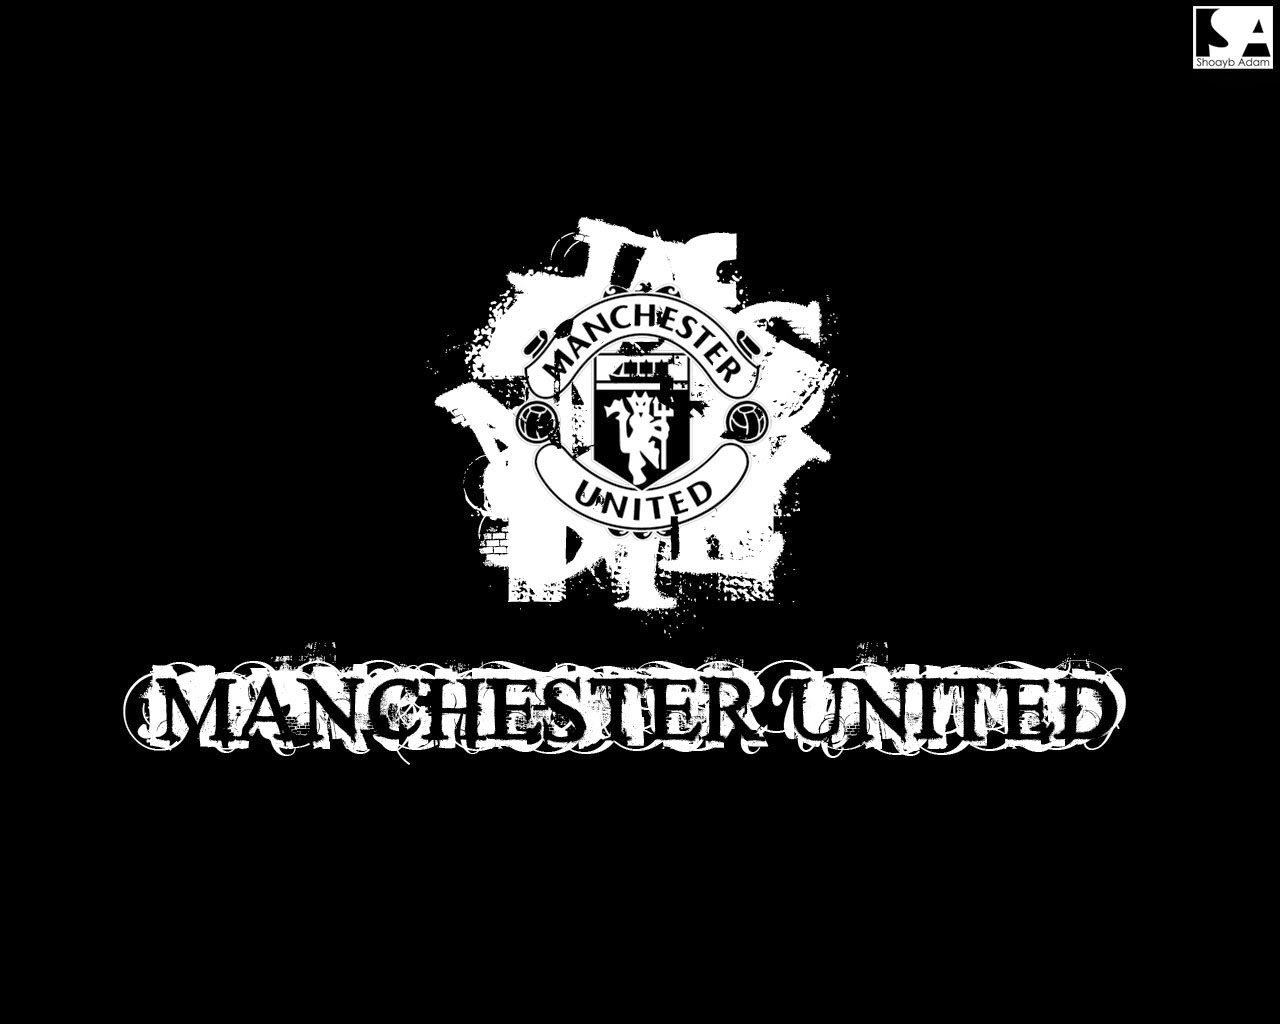 man utd wallpapers screensavers manchester united f c 1280x1024 wallpaper teahub io man utd wallpapers screensavers